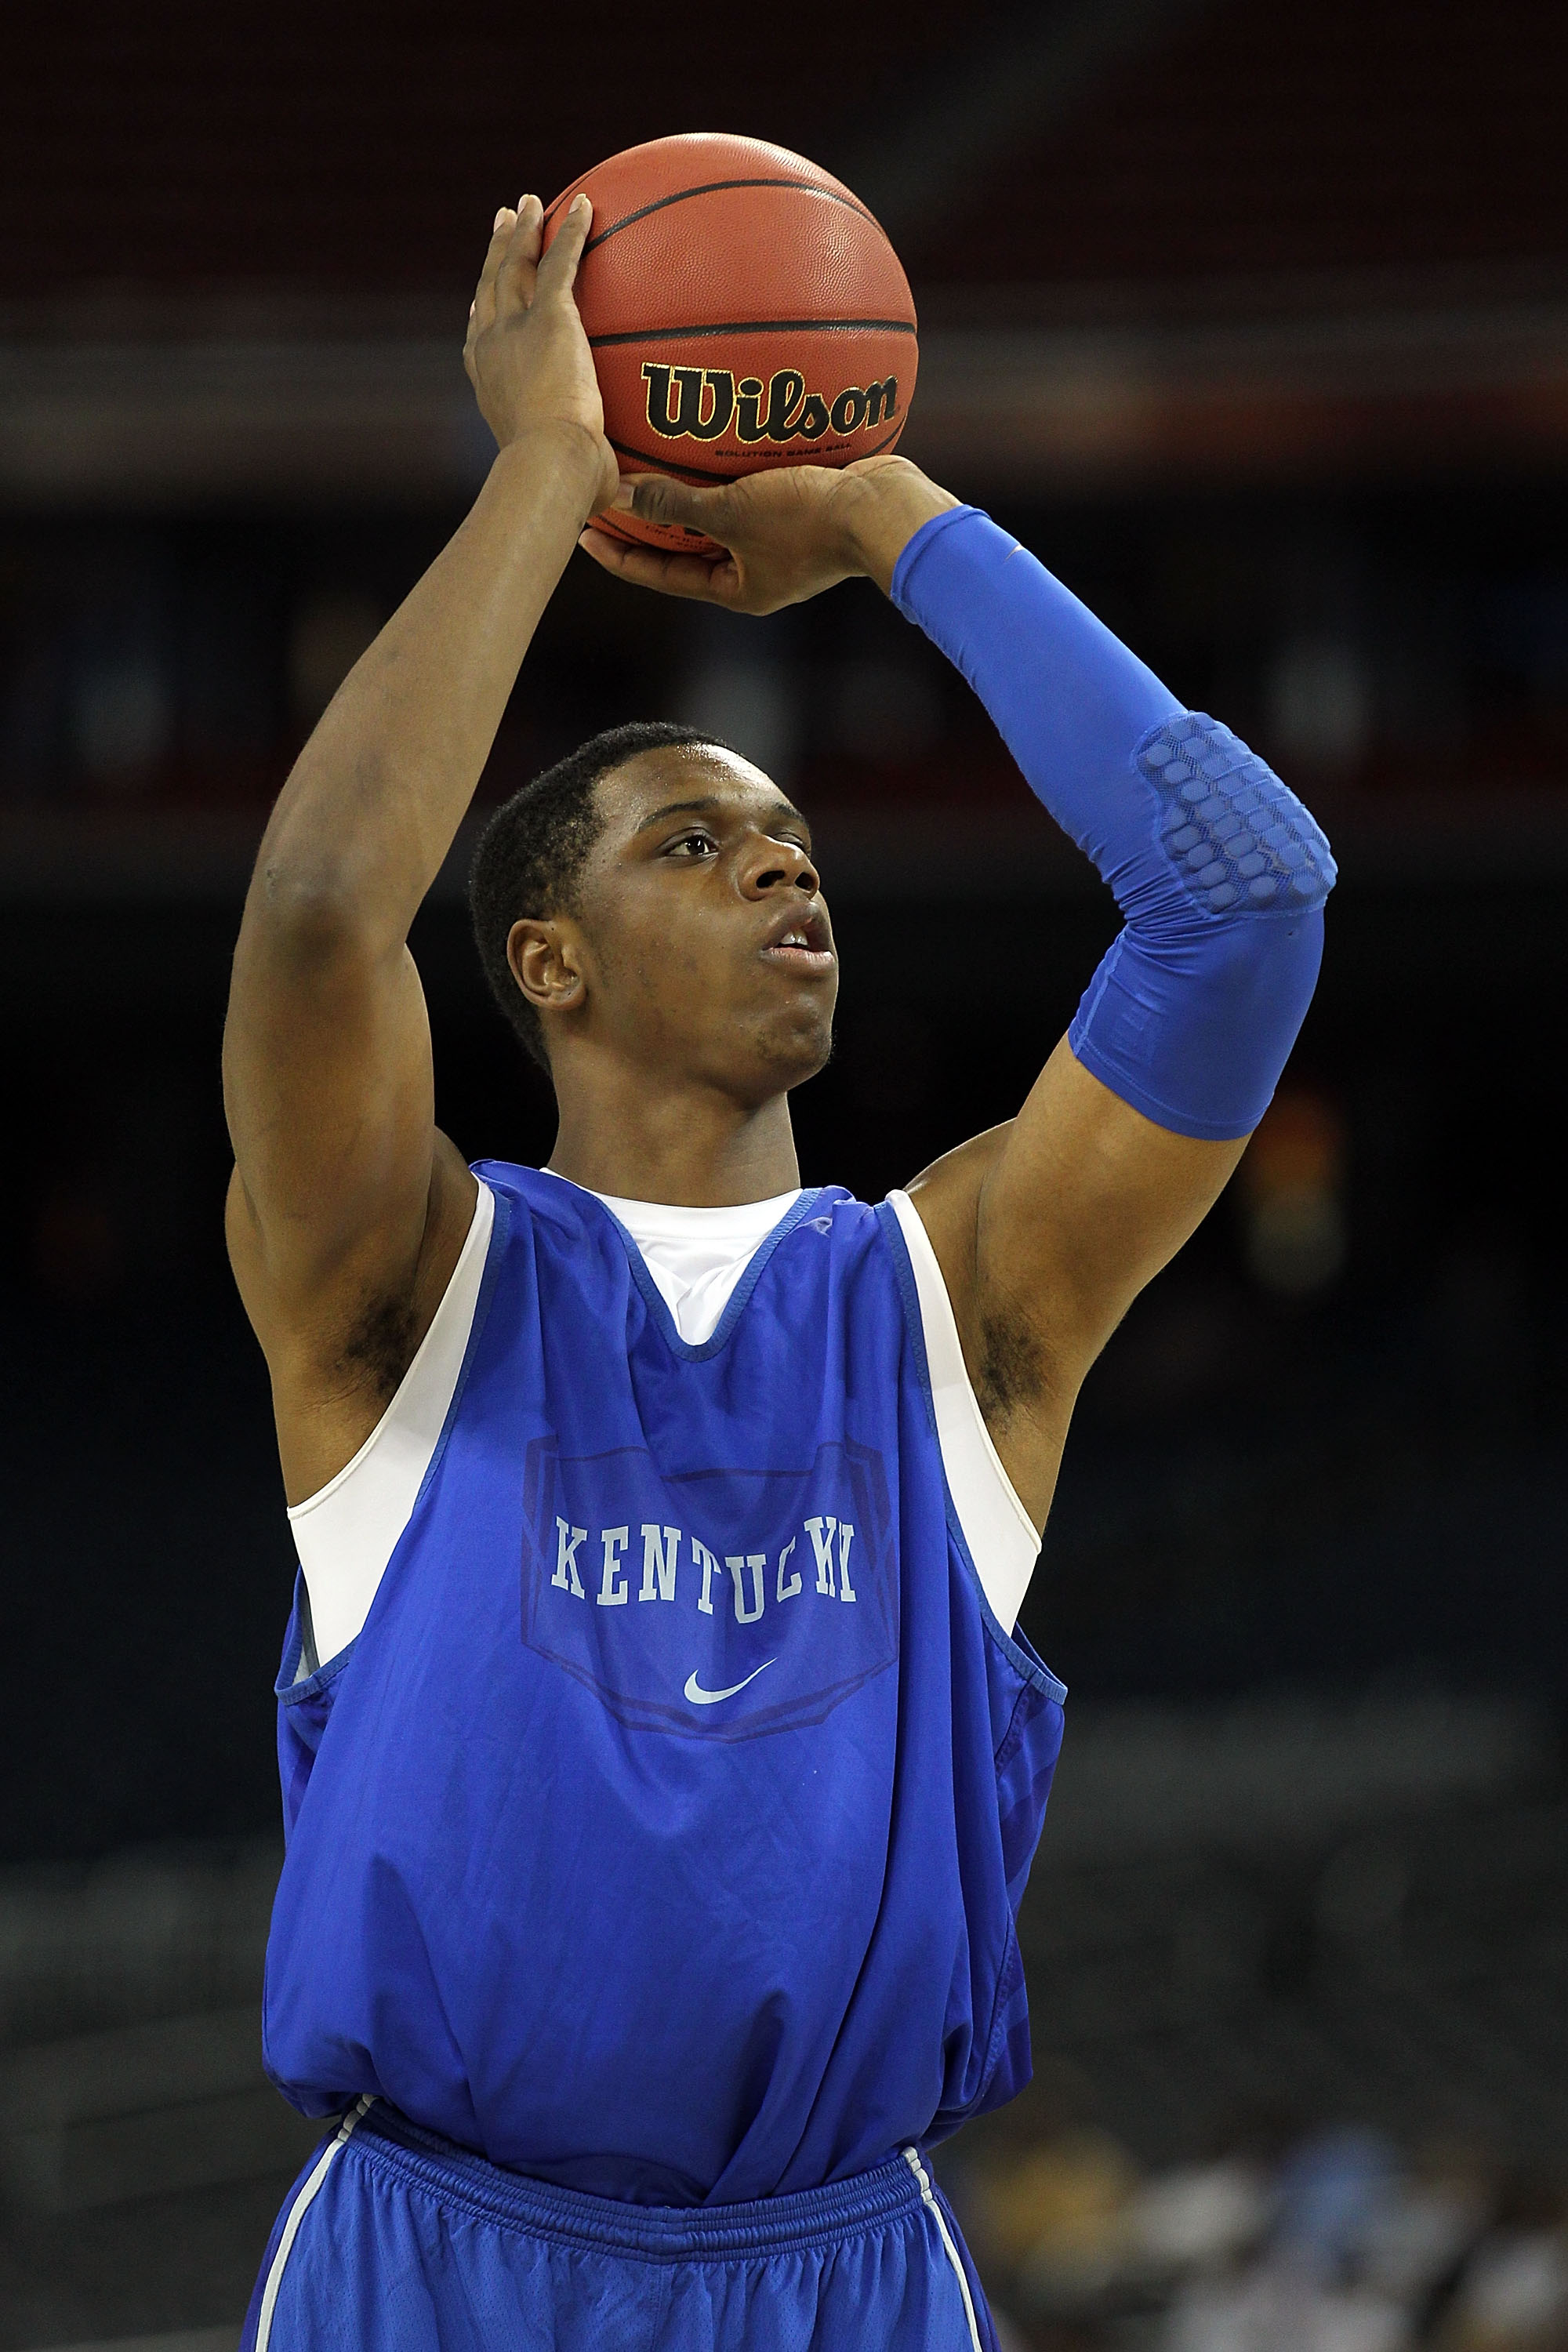 HOUSTON, TX - APRIL 01:  Terrence Jones #3 of the Kentucky Wildcats shoots the ball during practice prior to the 2011 Final Four of the NCAA Division I Men's Basketball Tournament at Reliant Stadium on April 1, 2011 in Houston, Texas.  (Photo by Andy Lyon